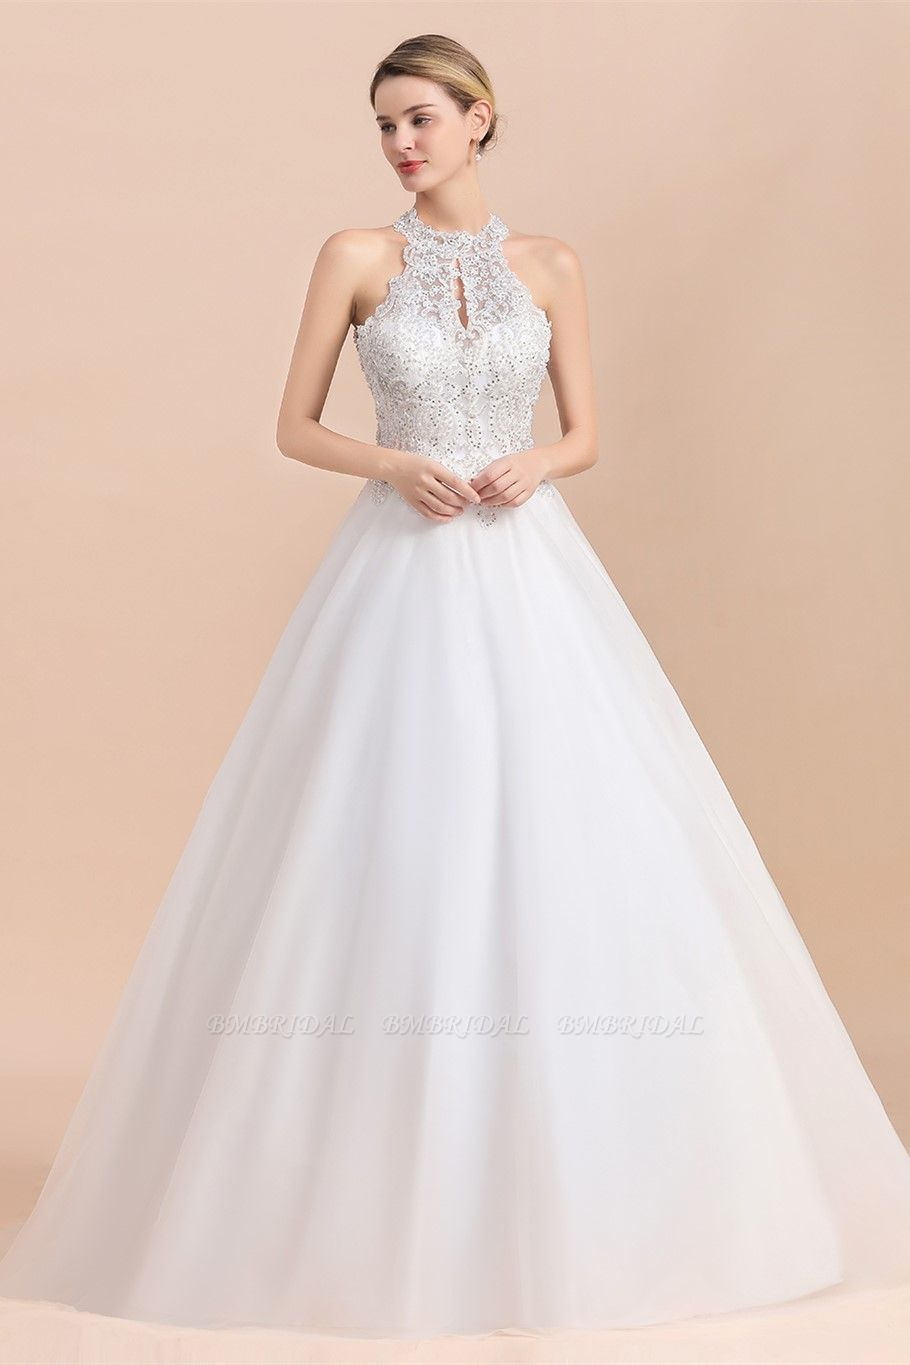 BMbridal Exquisite High-Neck Lace Wedding Dress Appliques Sequins Sleeveless Bridal Gowns On Sale